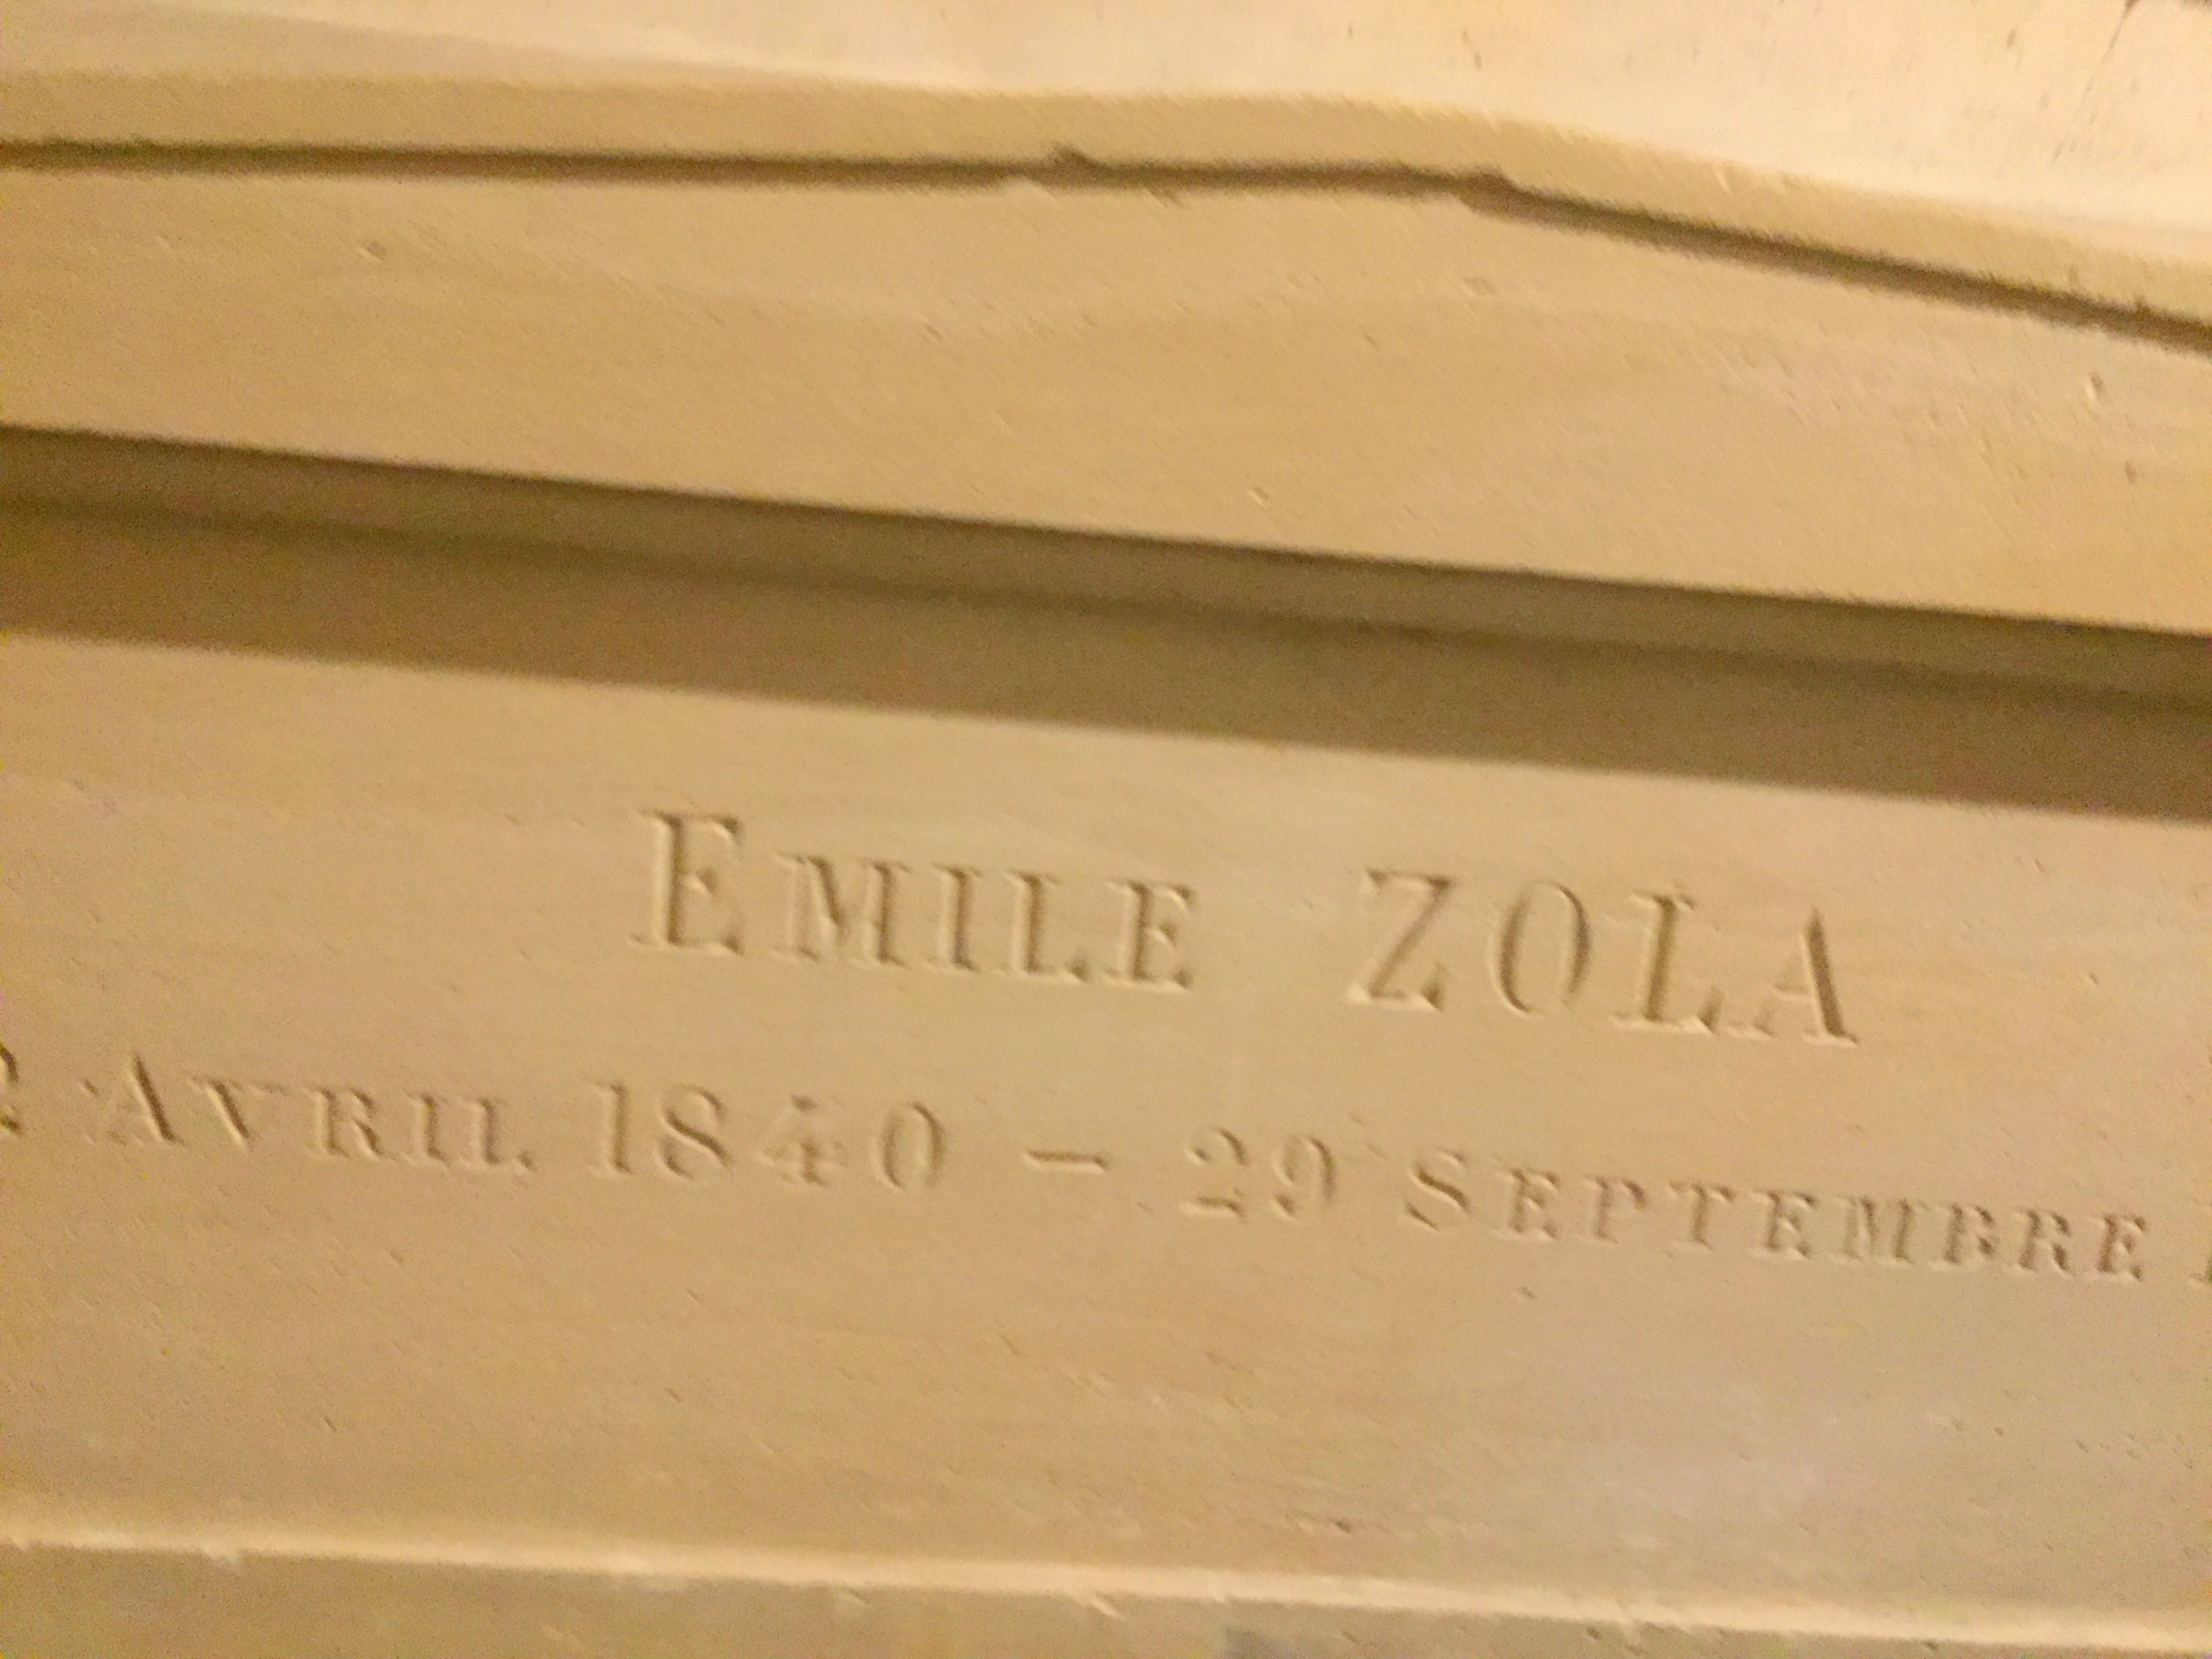 grave of Emile Zola in Pantheon Paris